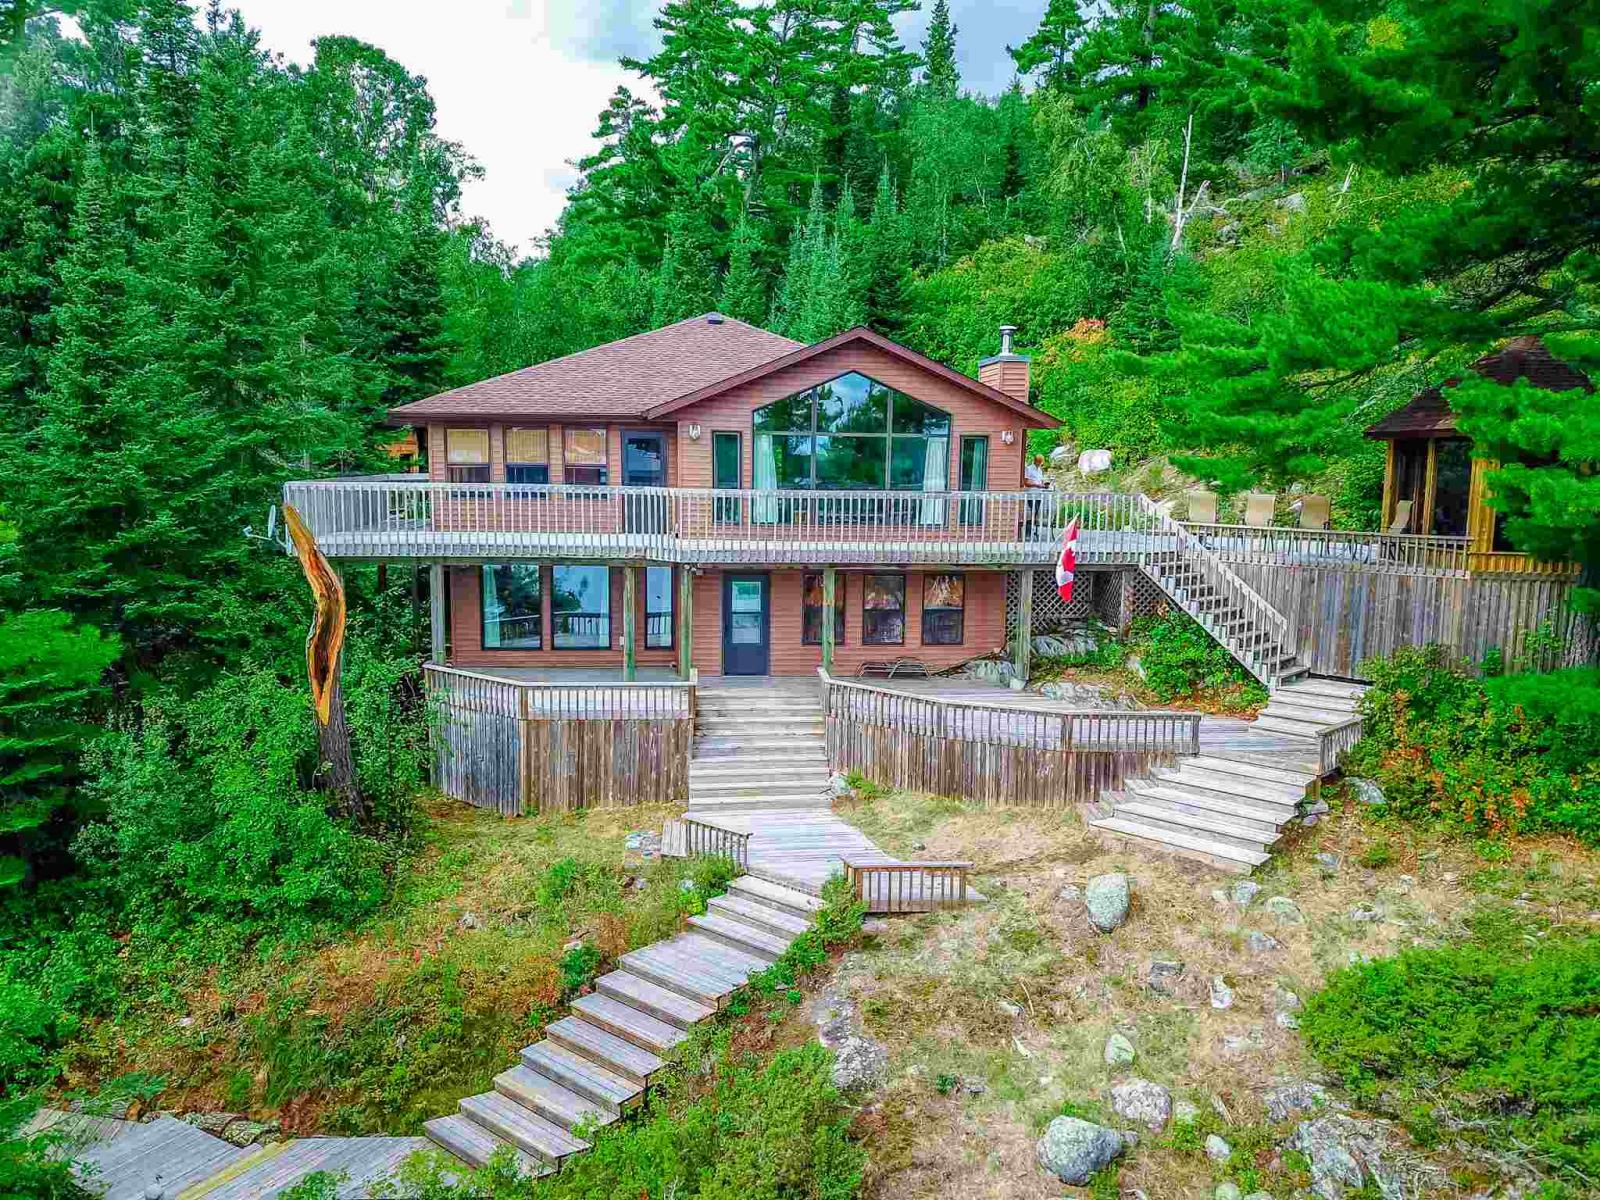 FEATURED LISTING: 48 LILY PAD BAY KENORA